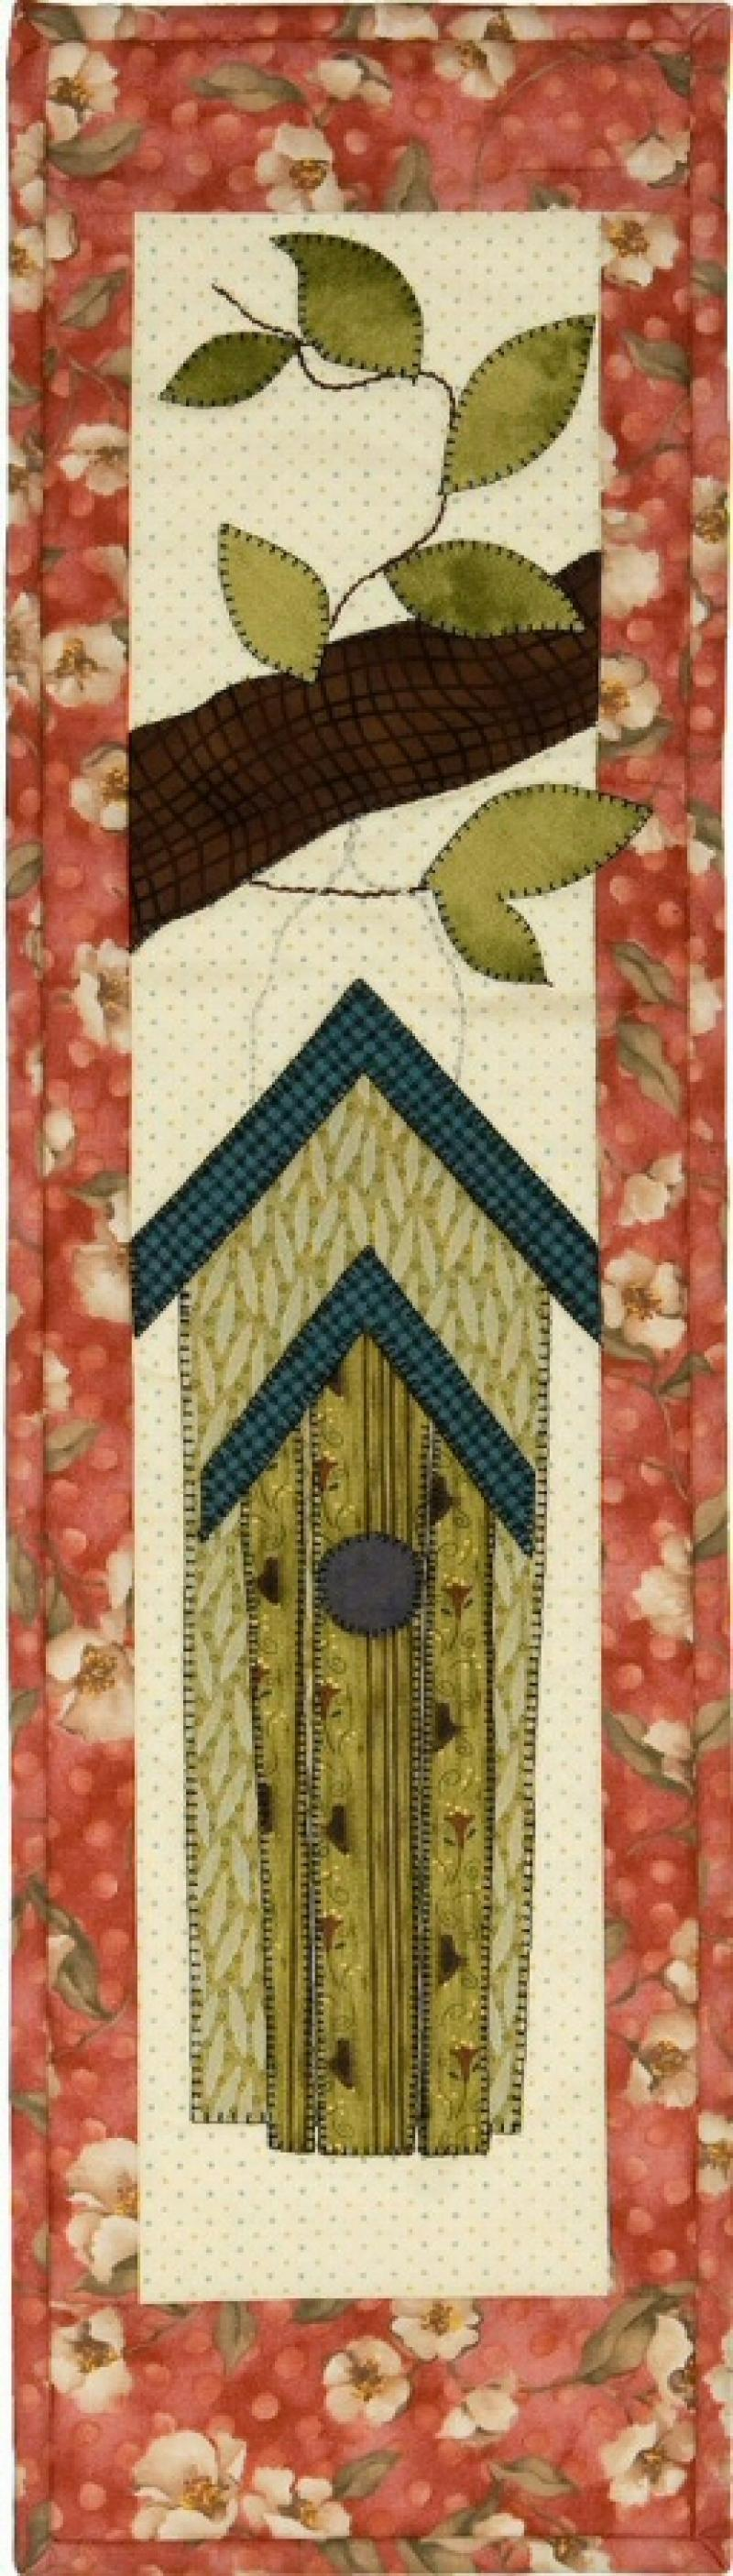 P109A Double Birdhouse Finished Model or pattern